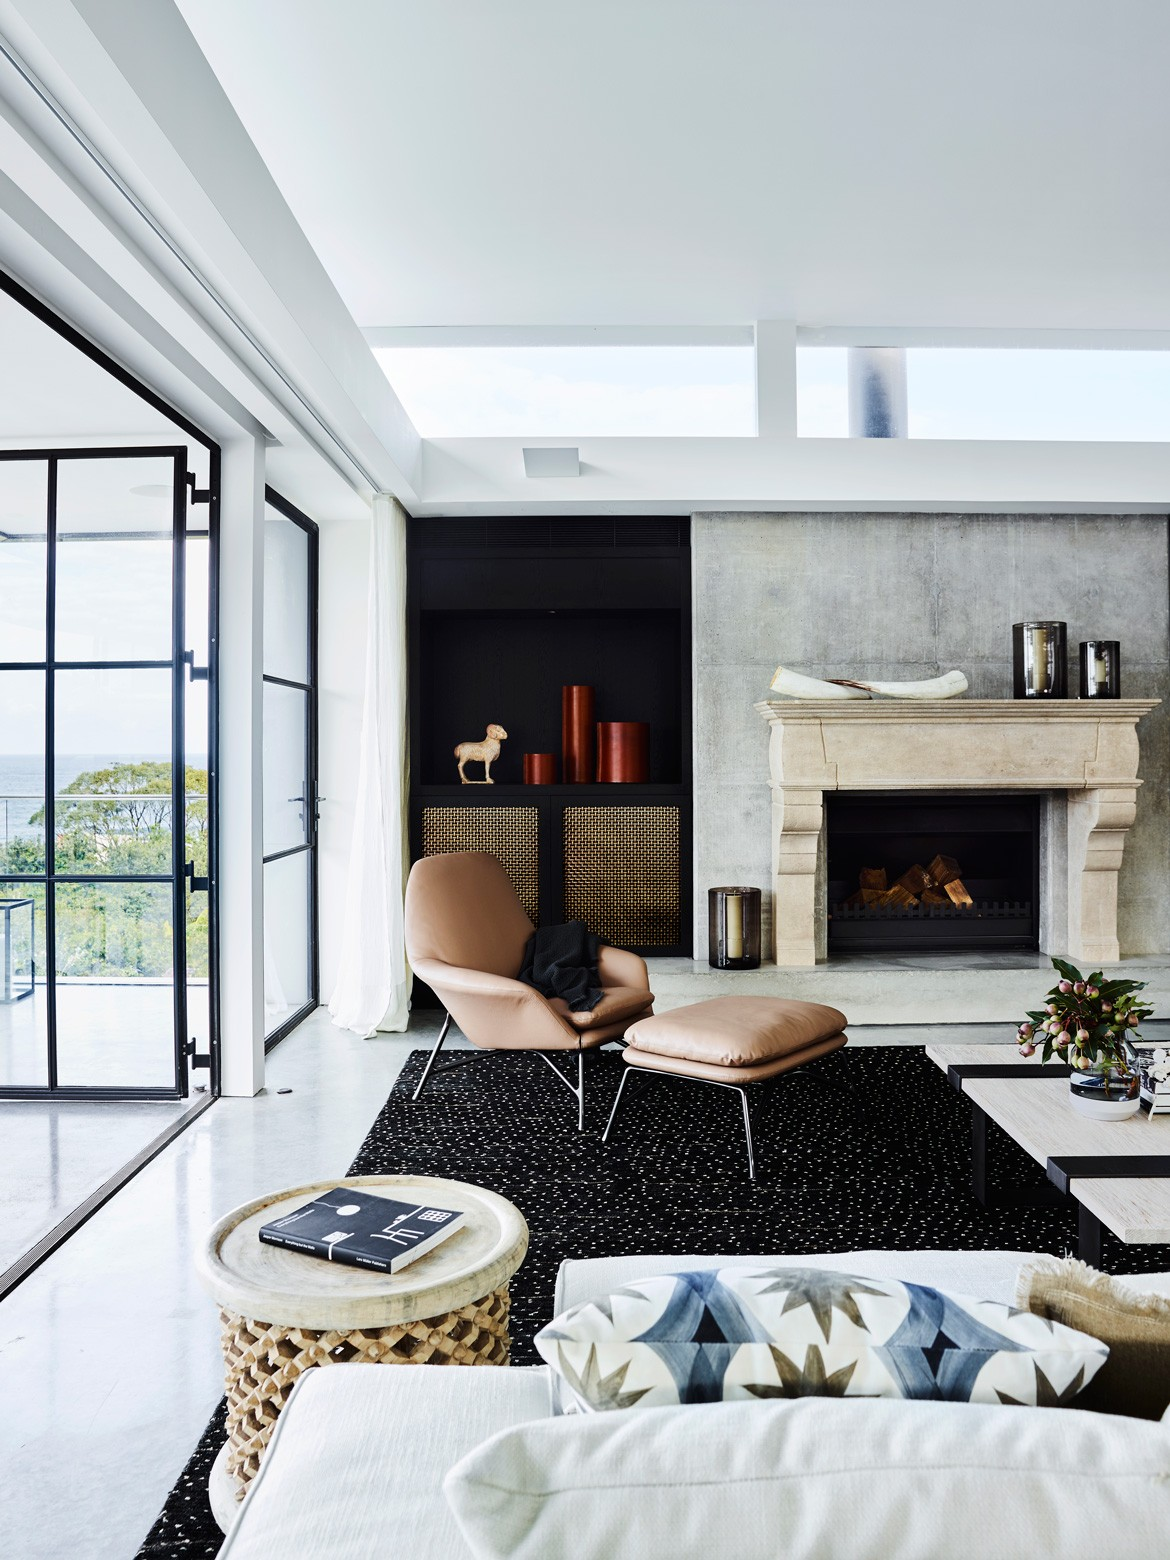 A Different Take On The Traditional Australian Beach House